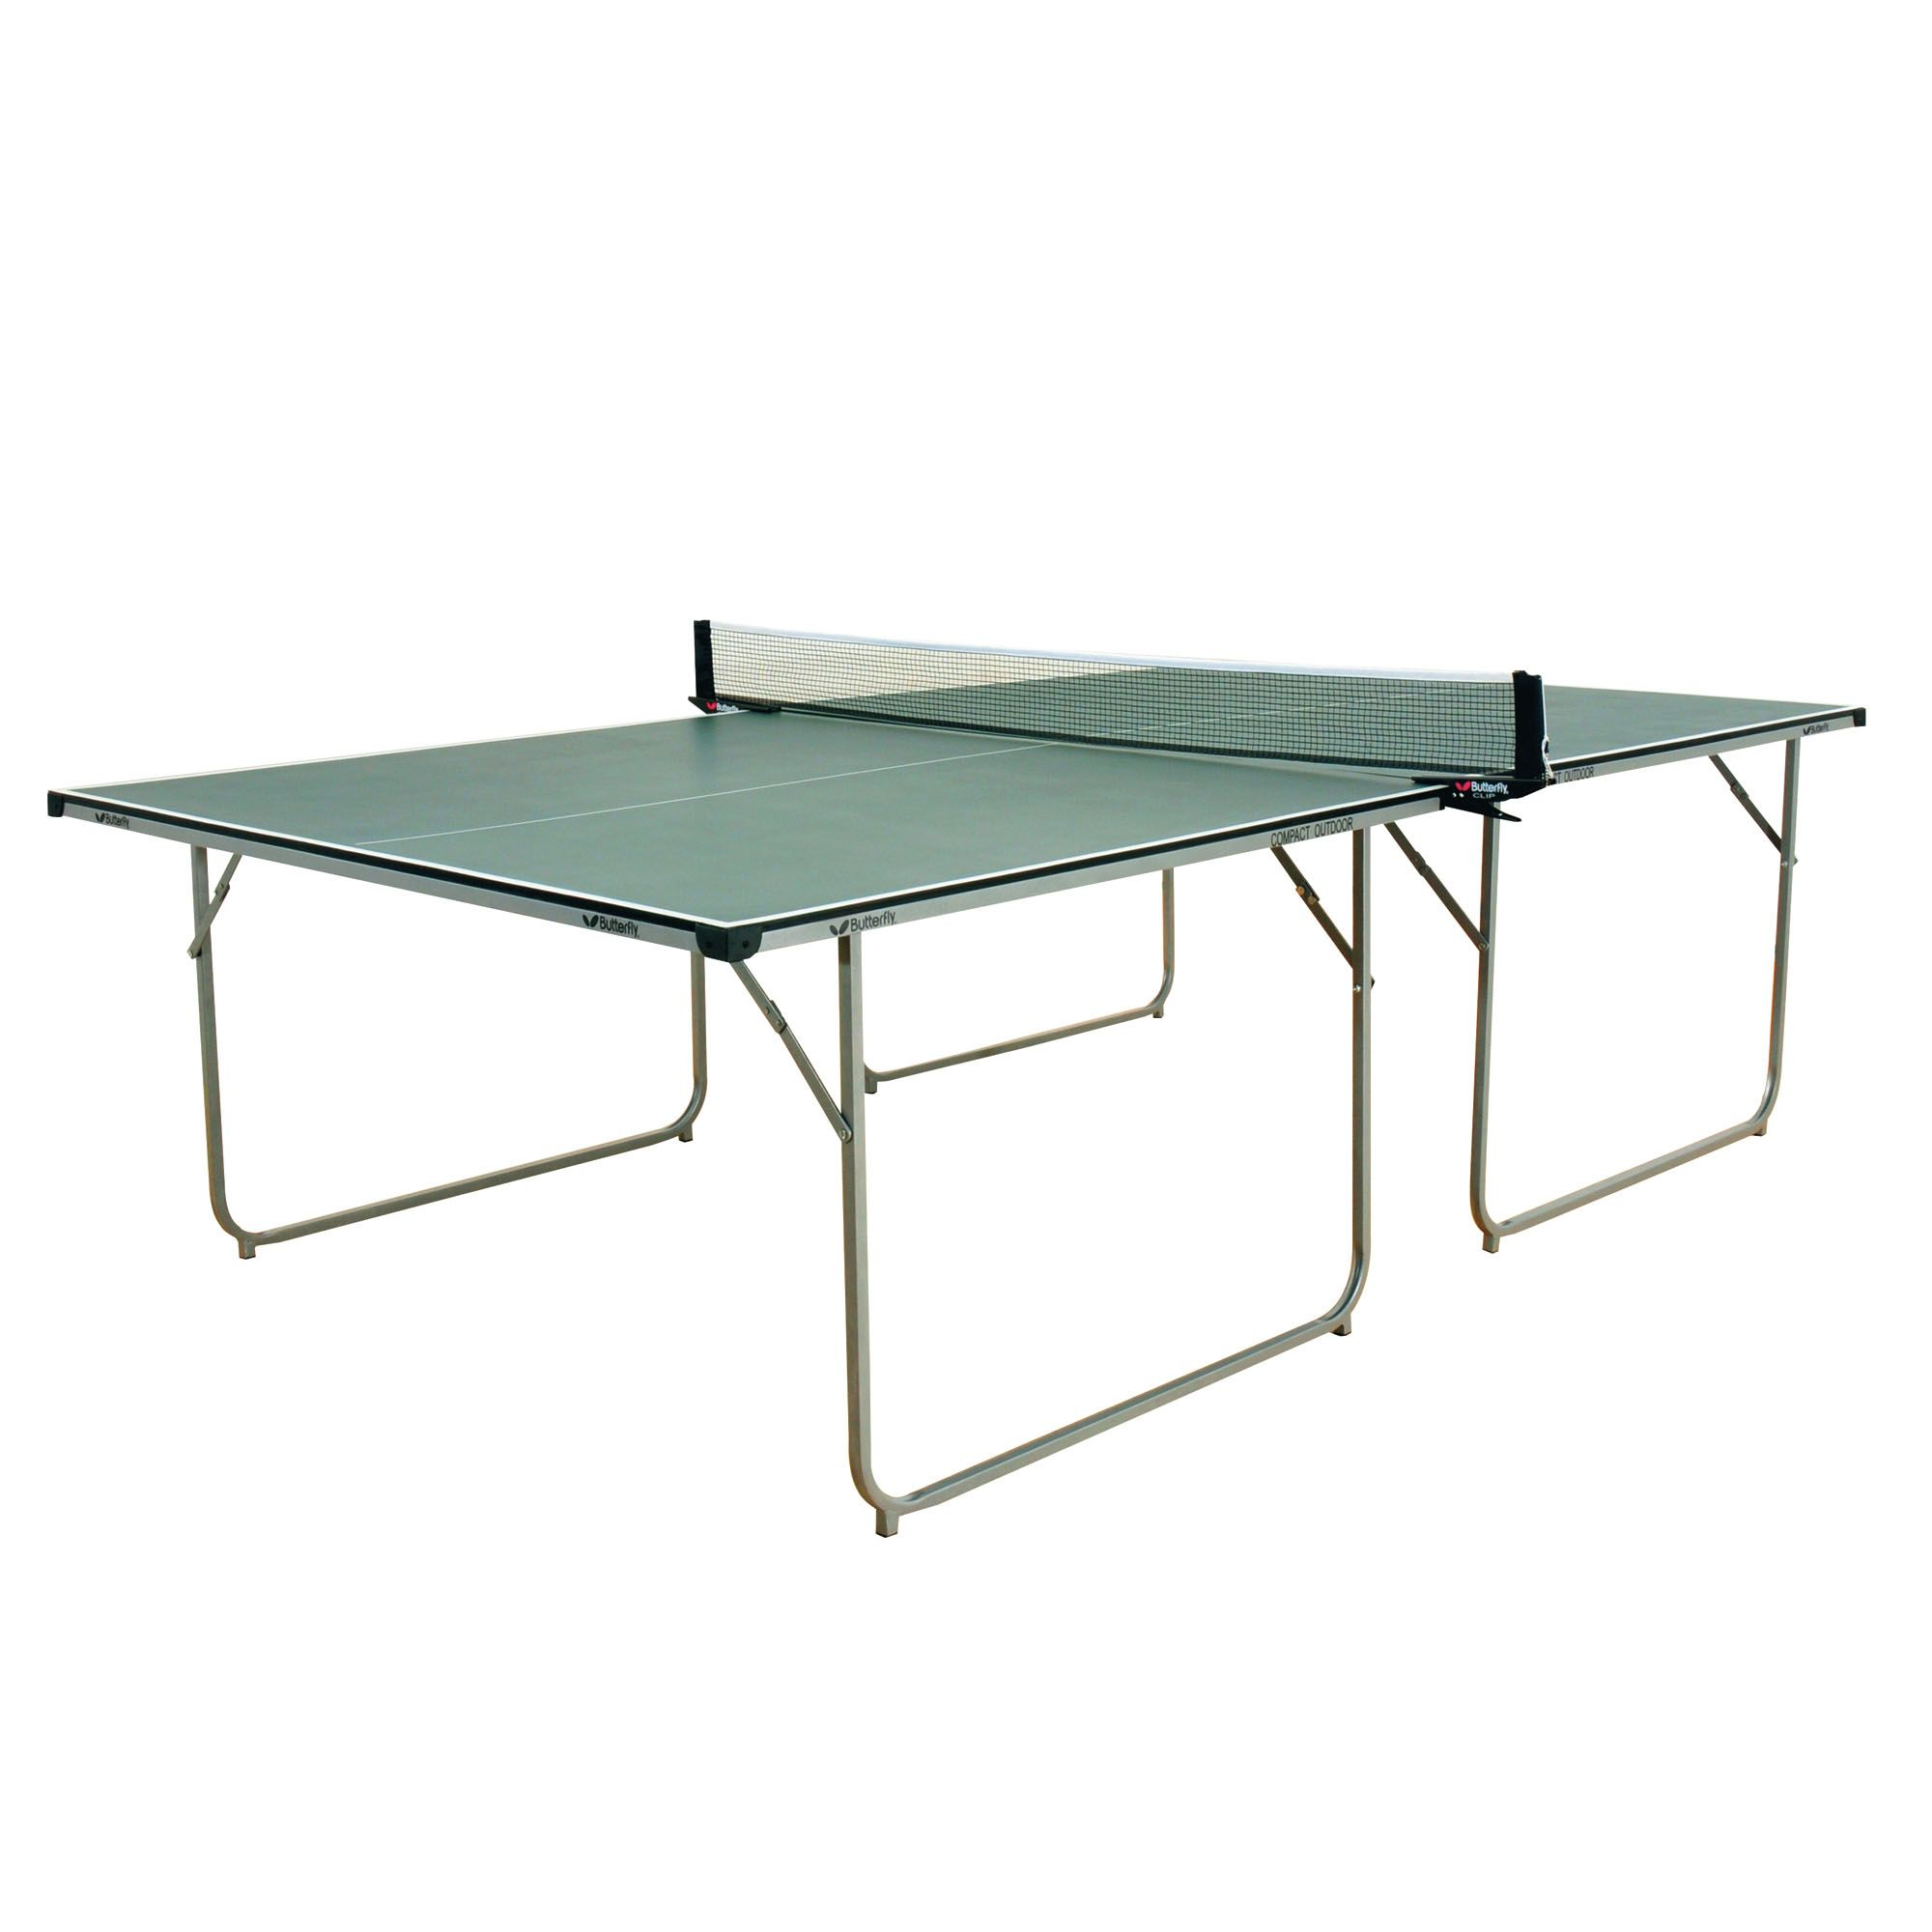 Butterfly compact outdoor table tennis table - Weatherproof table tennis table ...